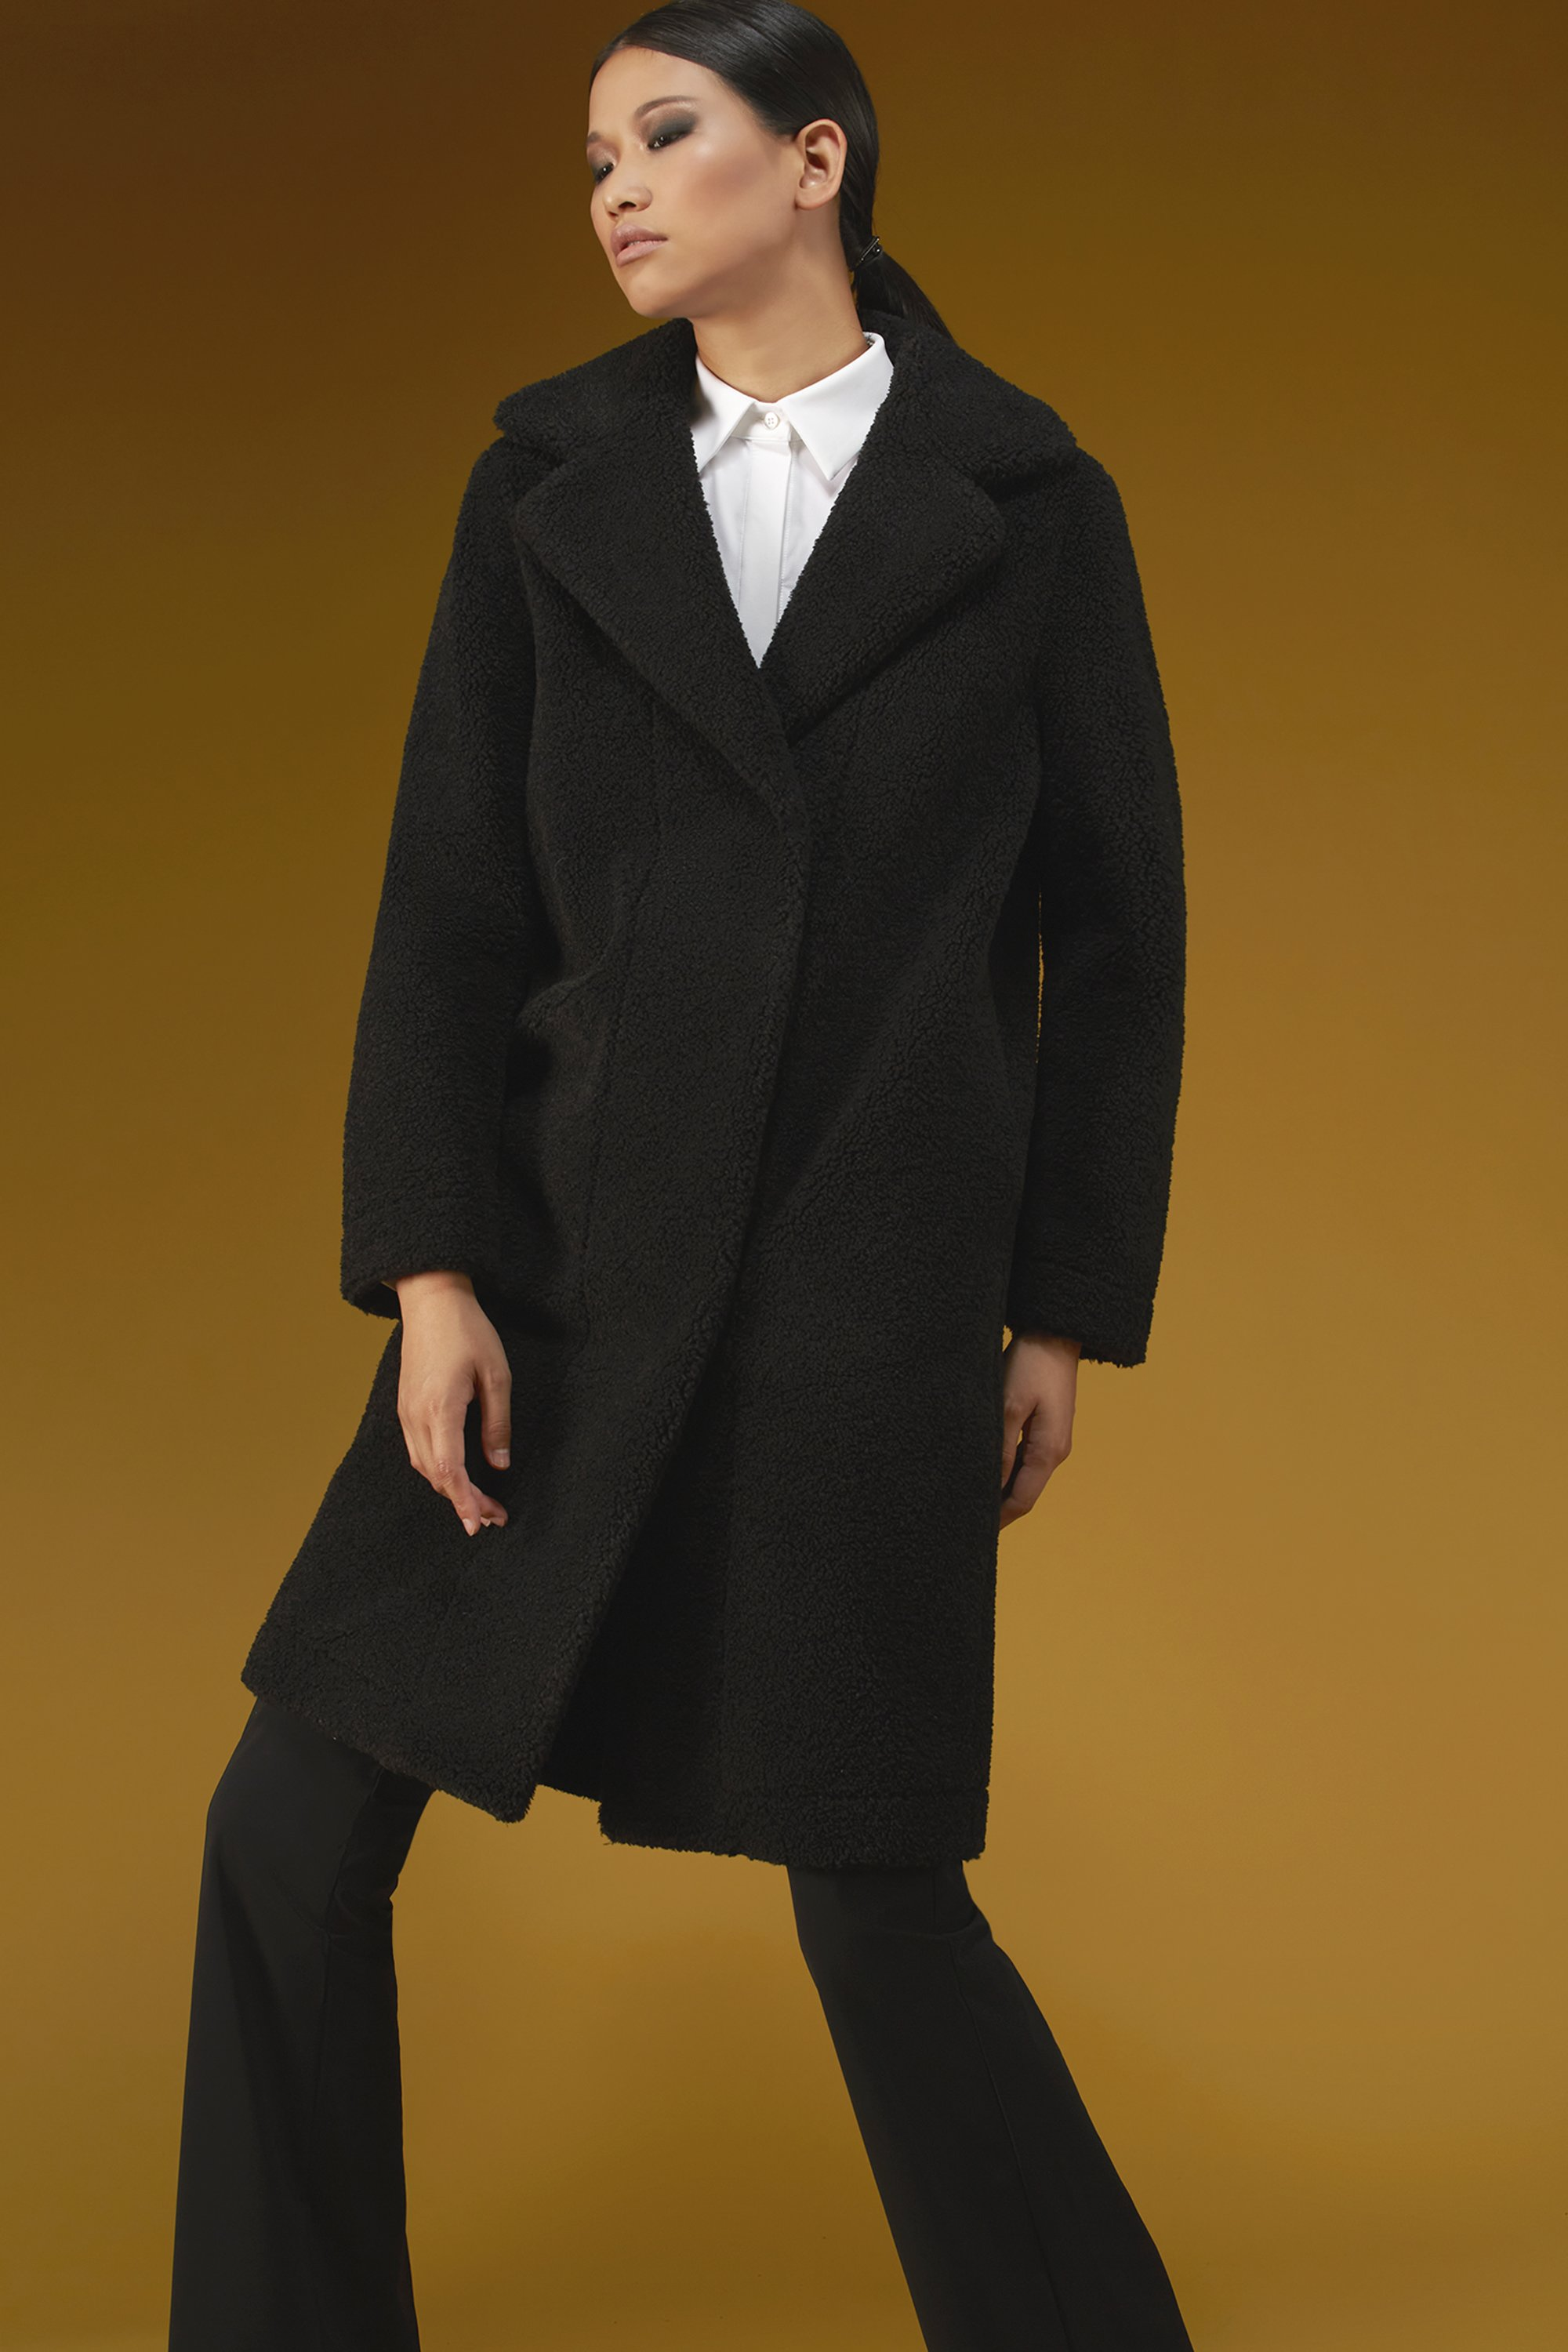 SHOPPING ON LINE RRD LAMB COAT LADY NEW COLLECTION  WOMEN'S FALL/WINTER 2022